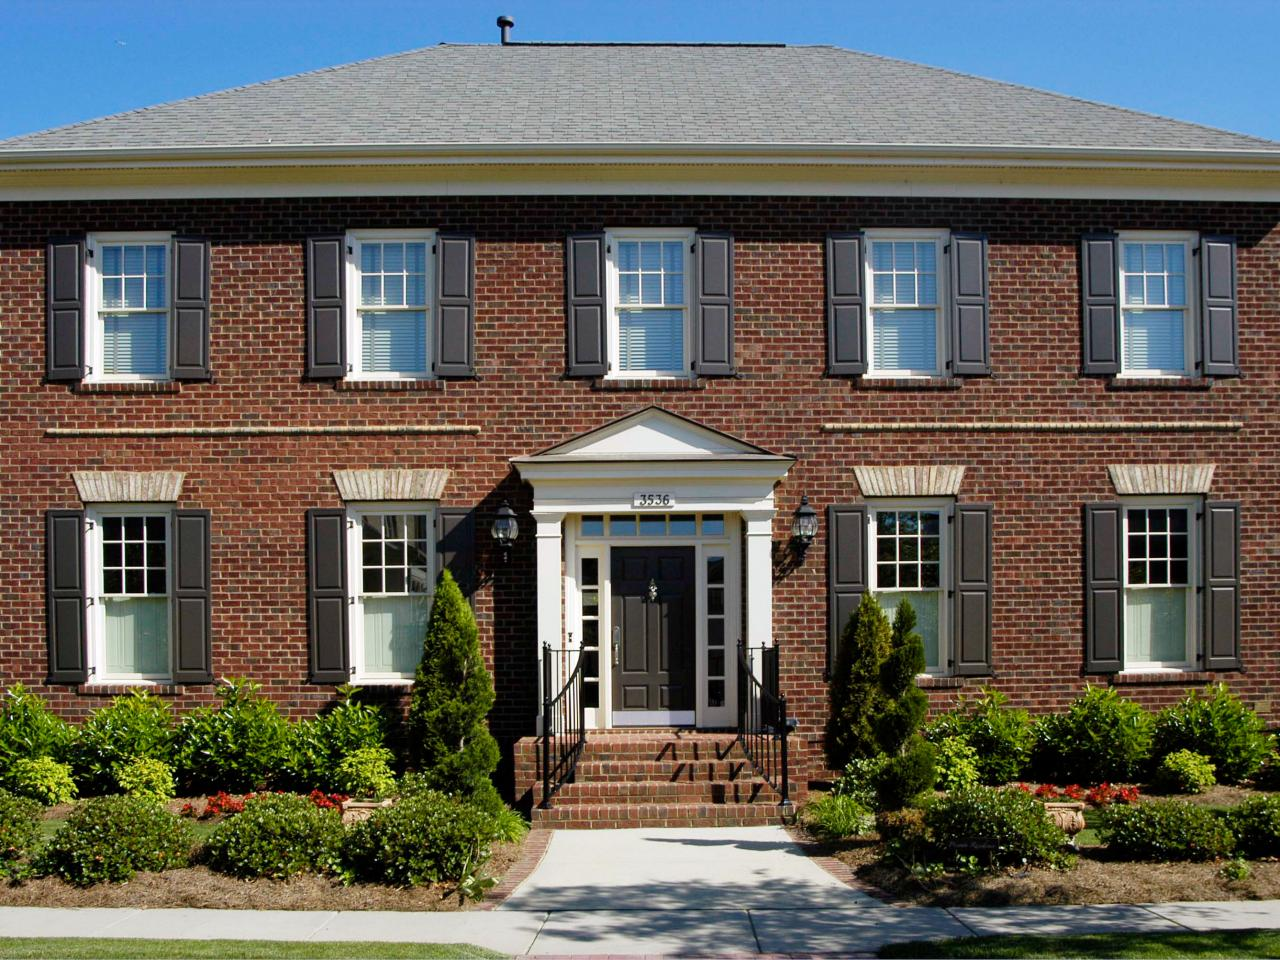 Brick remodeling ideas